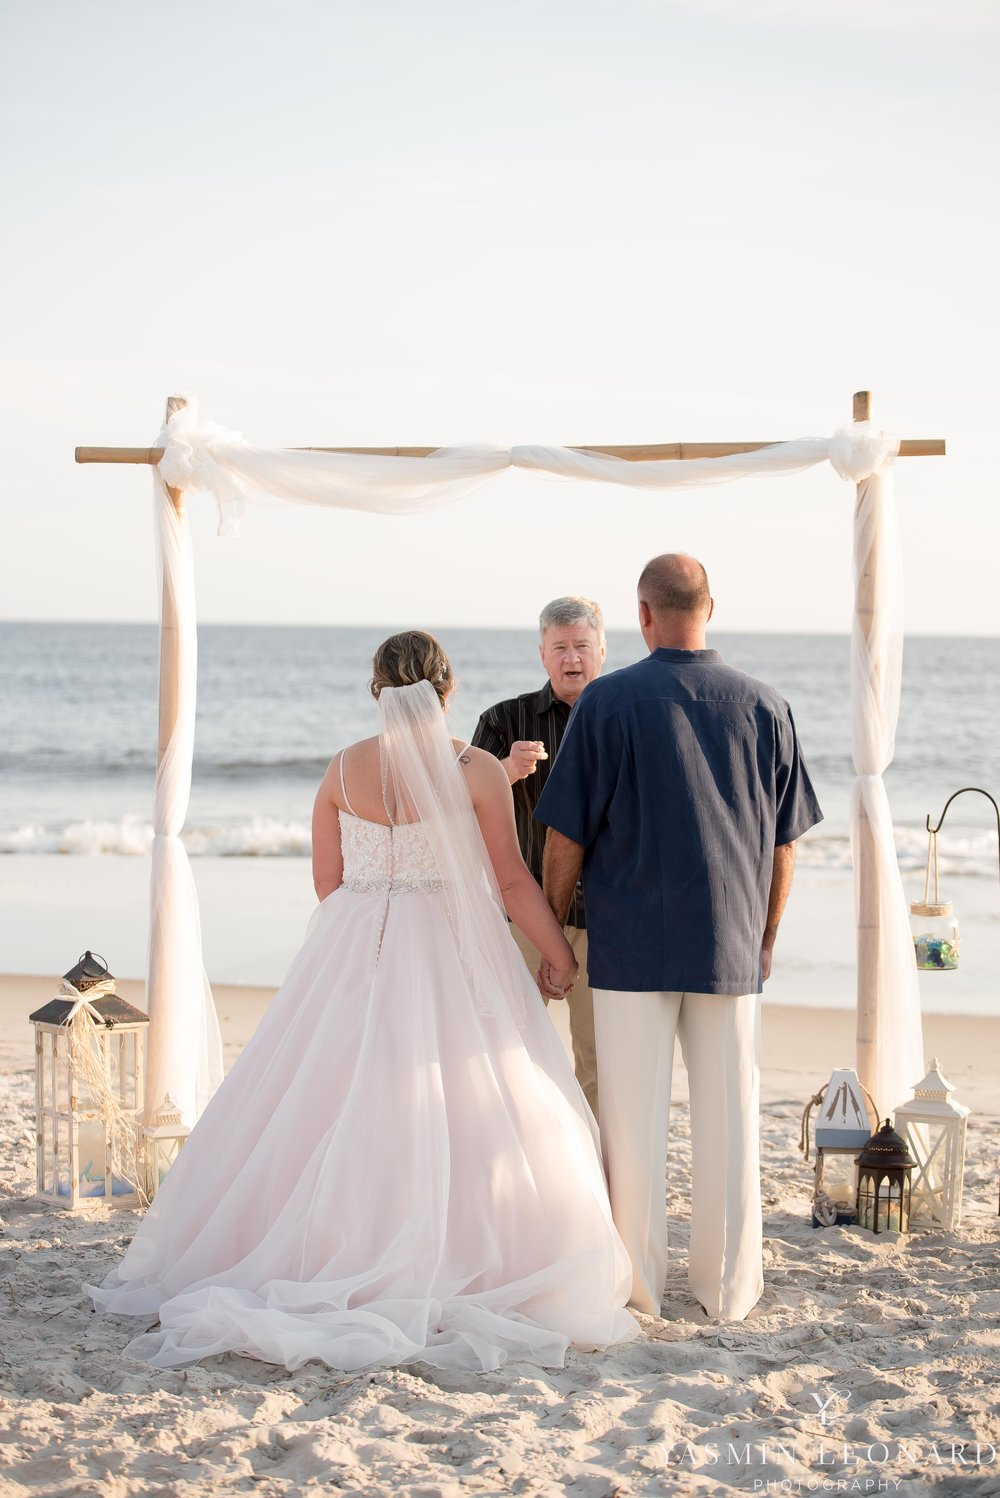 Oak Island _ Oak Island Wedding _ Beach Wedding_NC Beach Wedding_NC Destination Photographer_NC Wedding Photographer_Yasmin Leonard Photography_Beach Themed Wedding-24.jpg